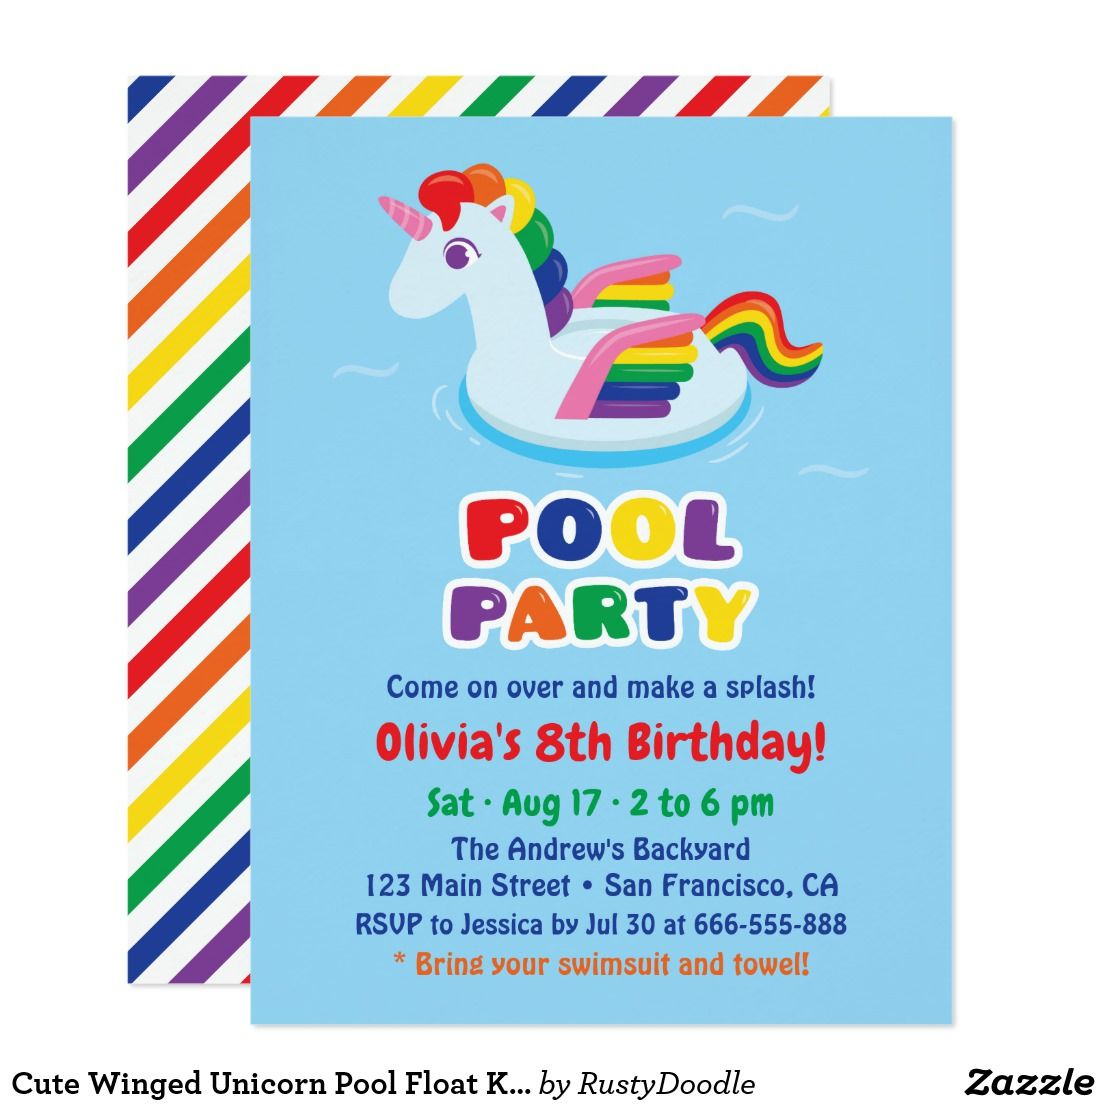 Party Pool Swimming Pool Color Dye: Cute Winged Unicorn Pool Float Kids Birthday Party